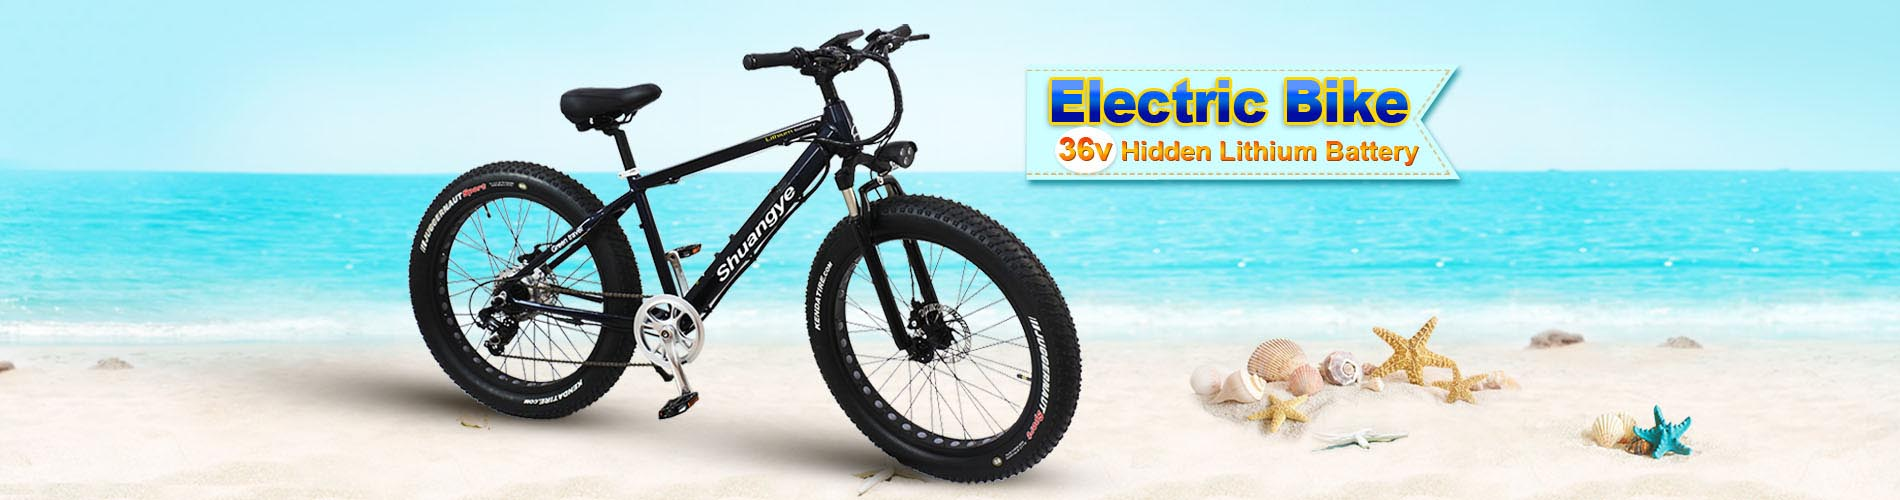 What are the different kinds of electric bikes and their price ranges